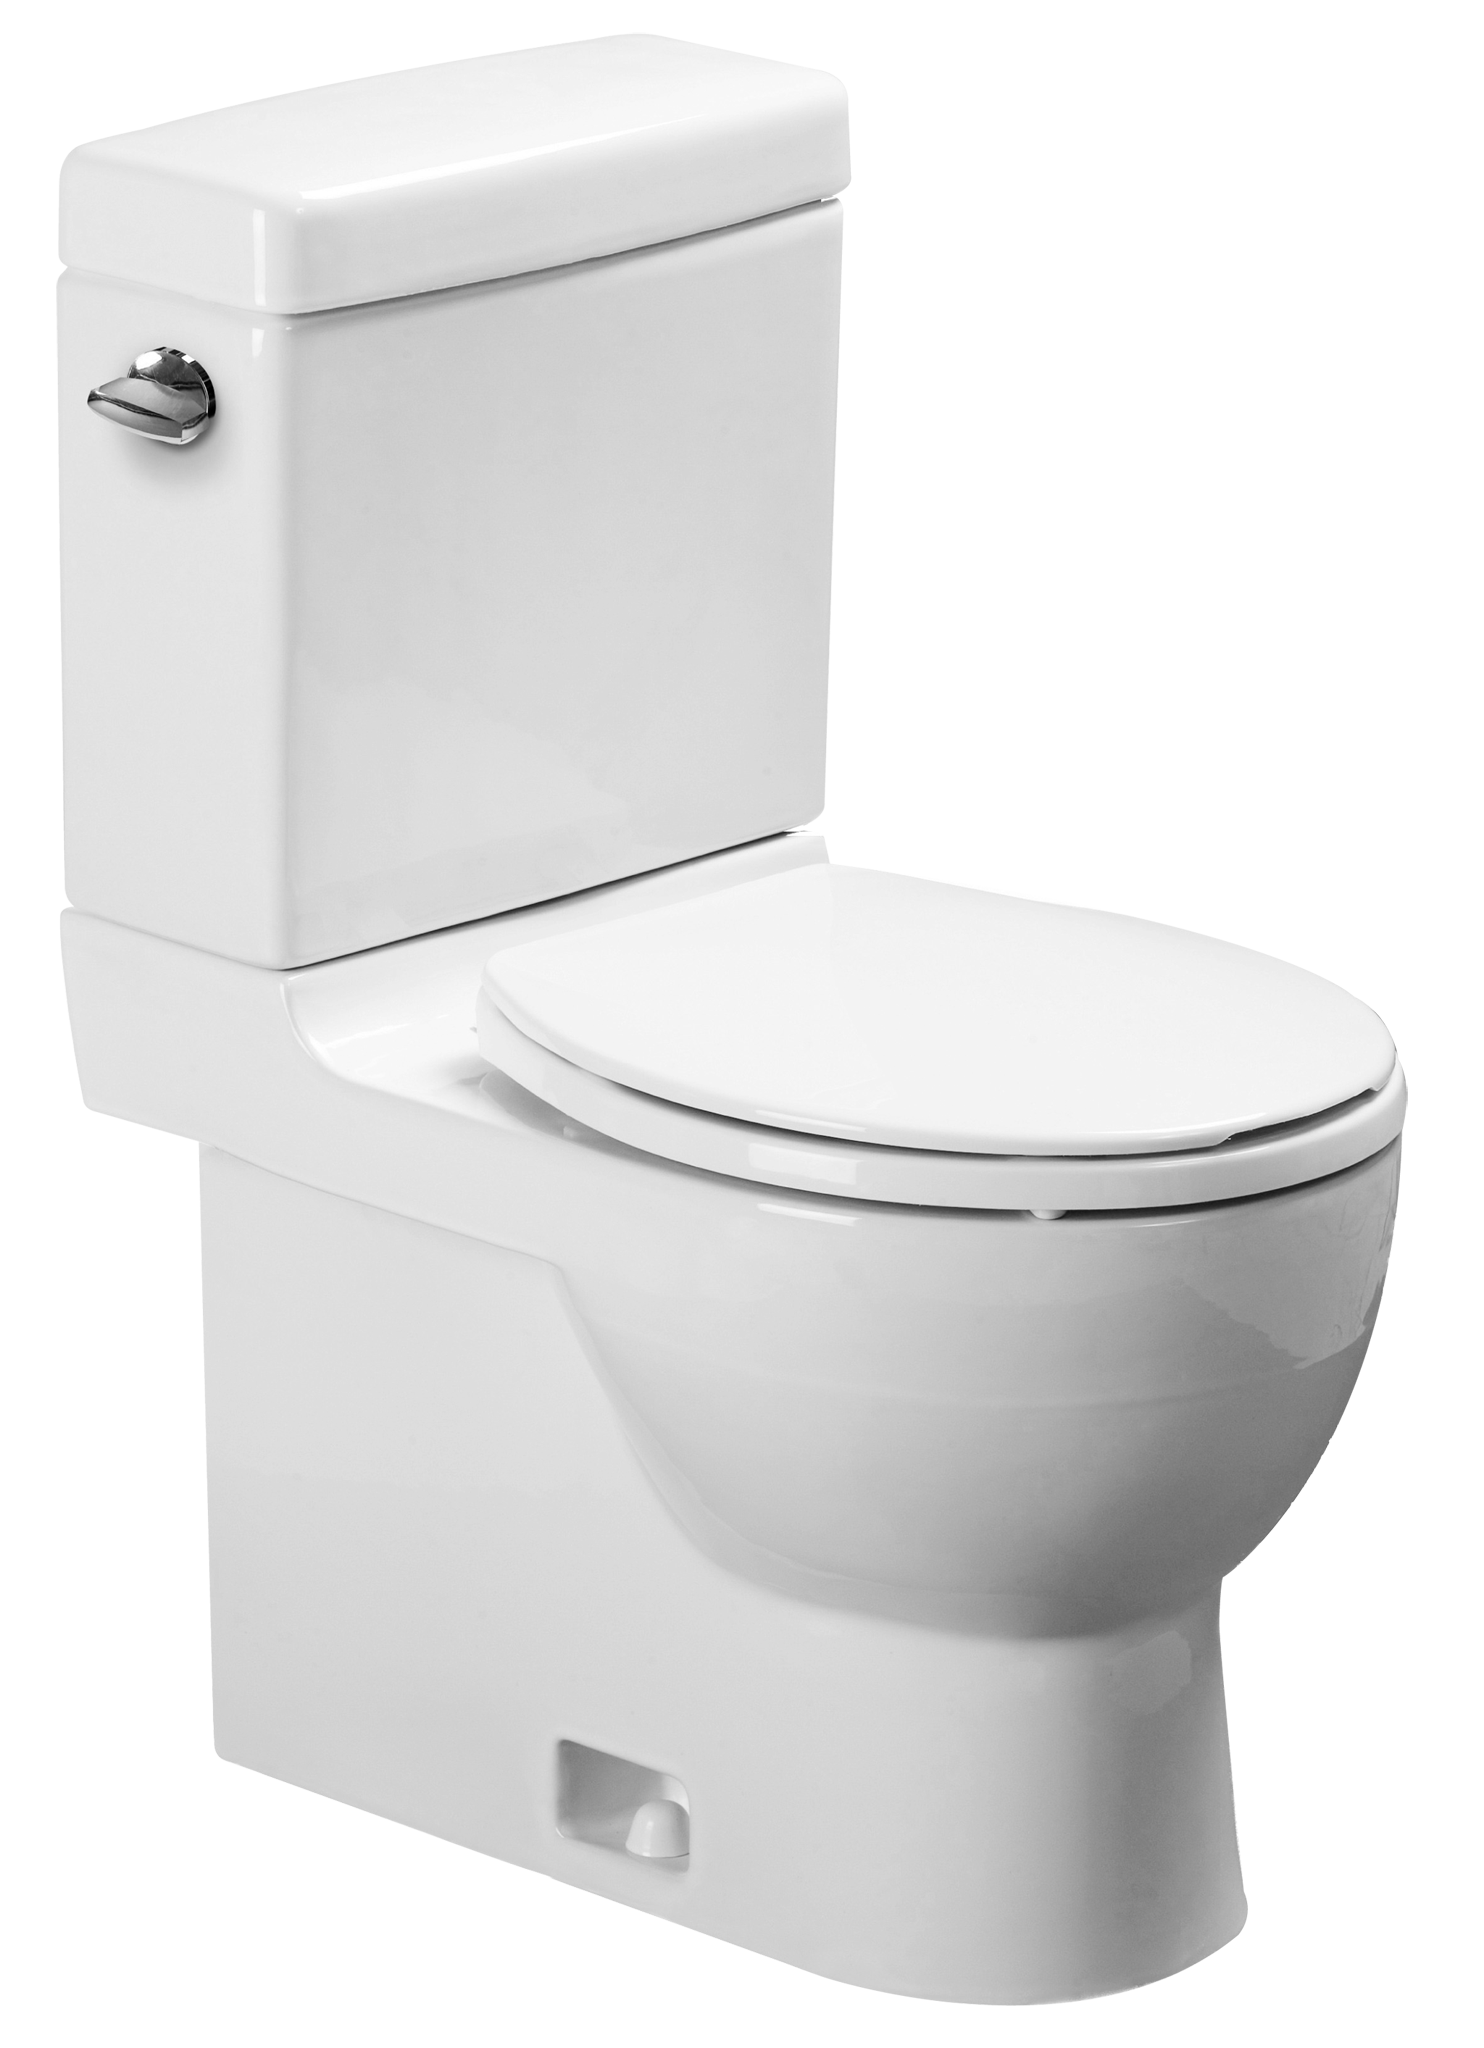 Cool Twist 2-PC-Toilet 5C1101 - Villeroy & Boch NS64